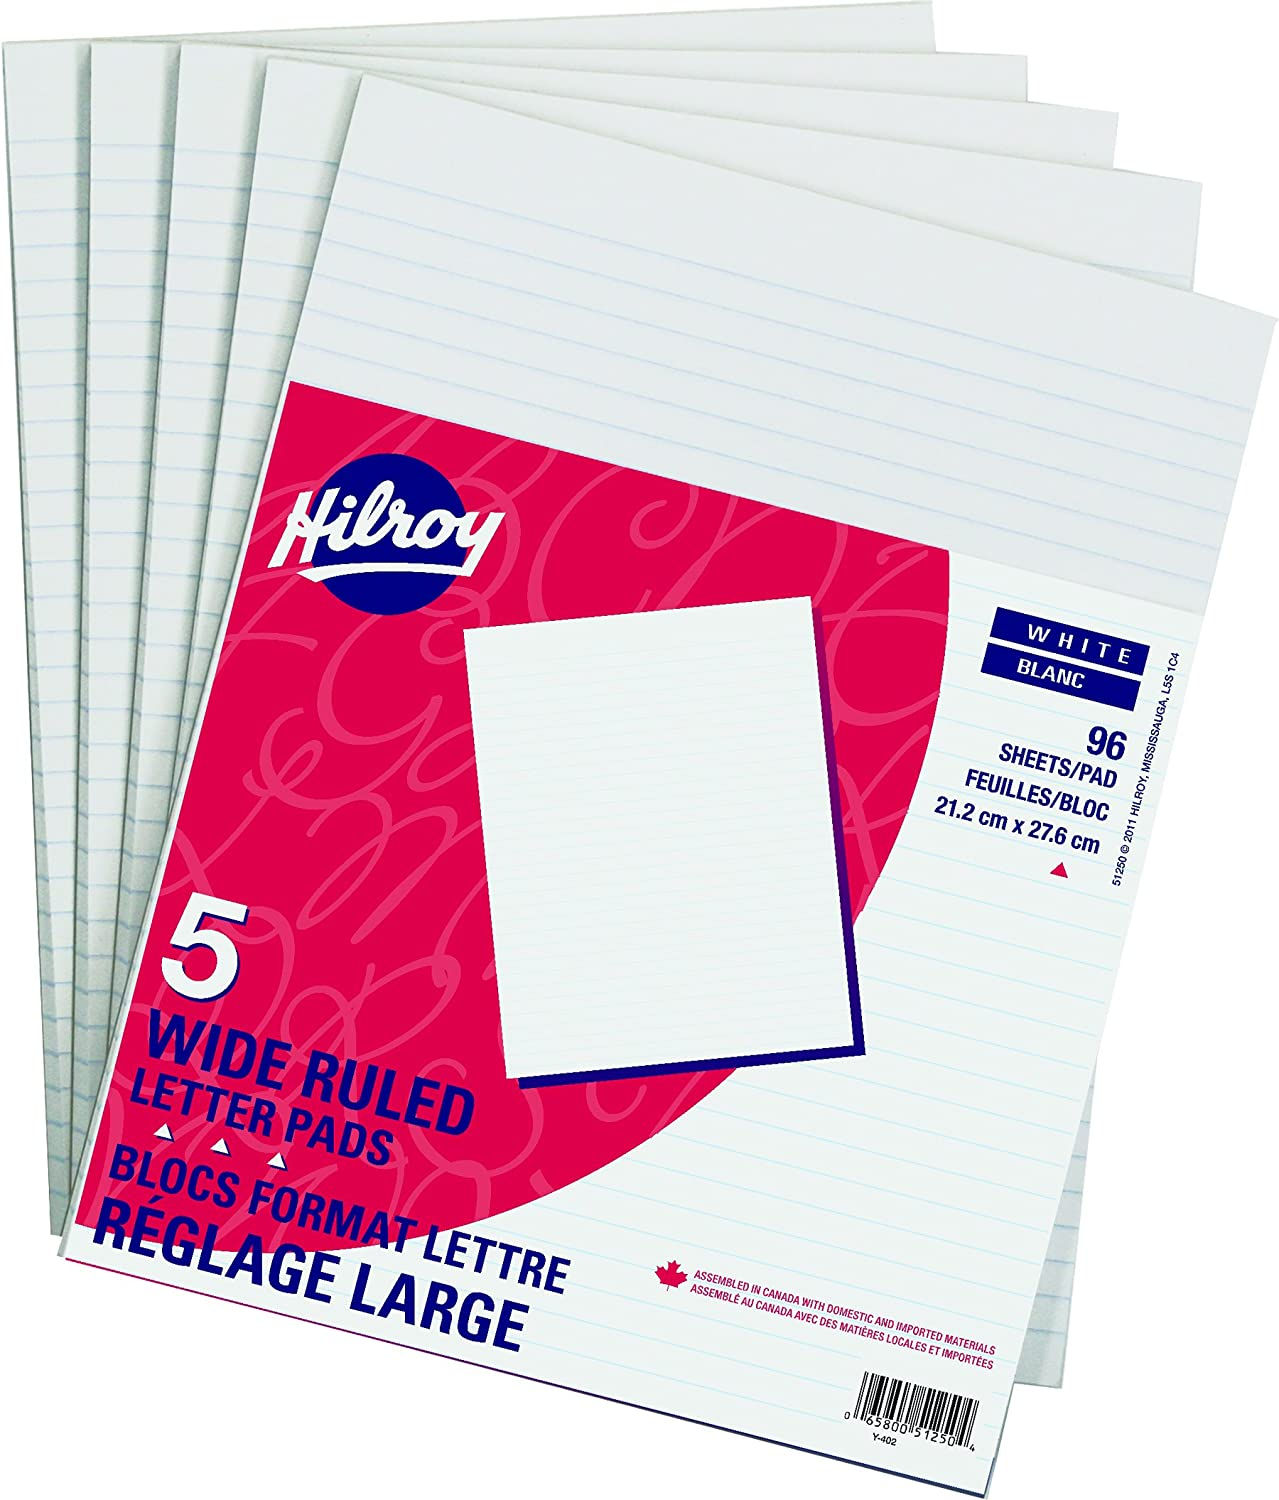 Hilroy Wide Ruled Legal Pad, 8-3/8 X 14 Inches, 90 Sheets, Canary, 5/pack (51451)